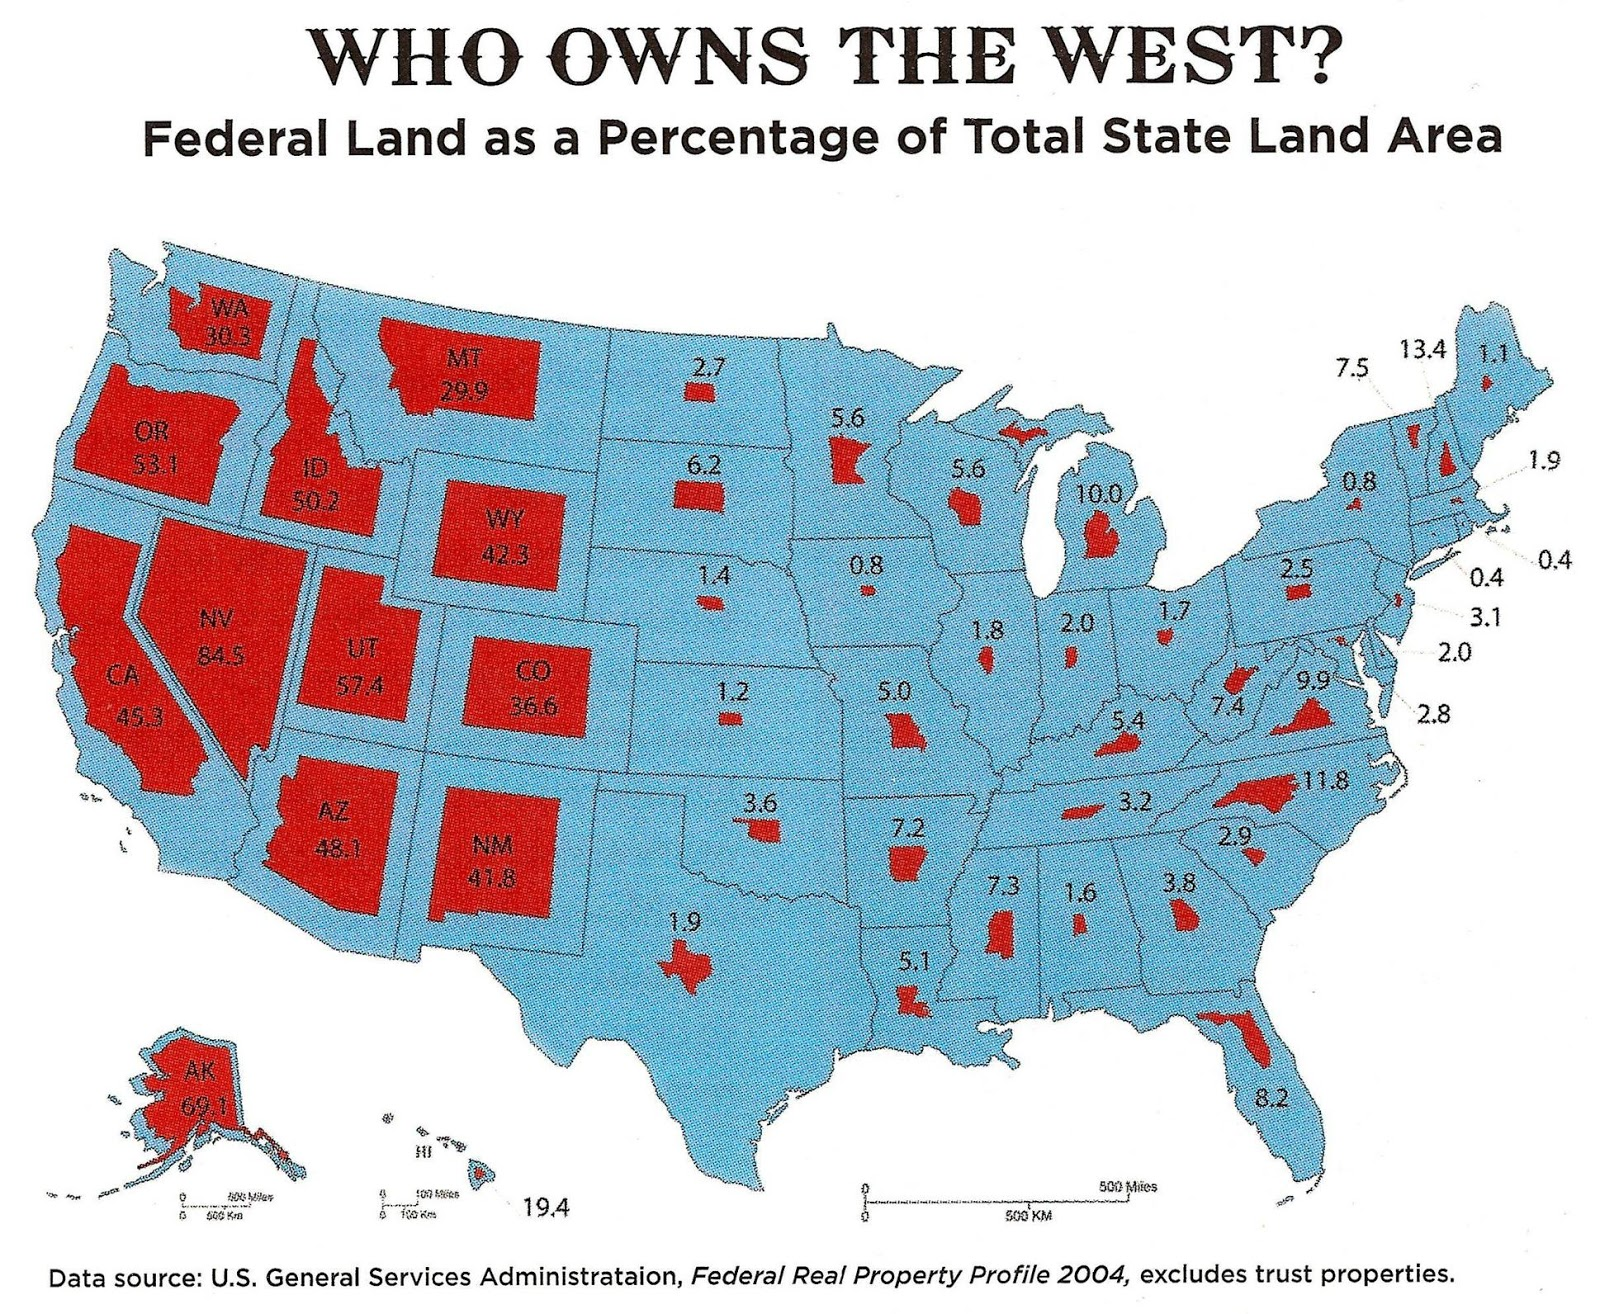 Federal land as a percentage of total State land area